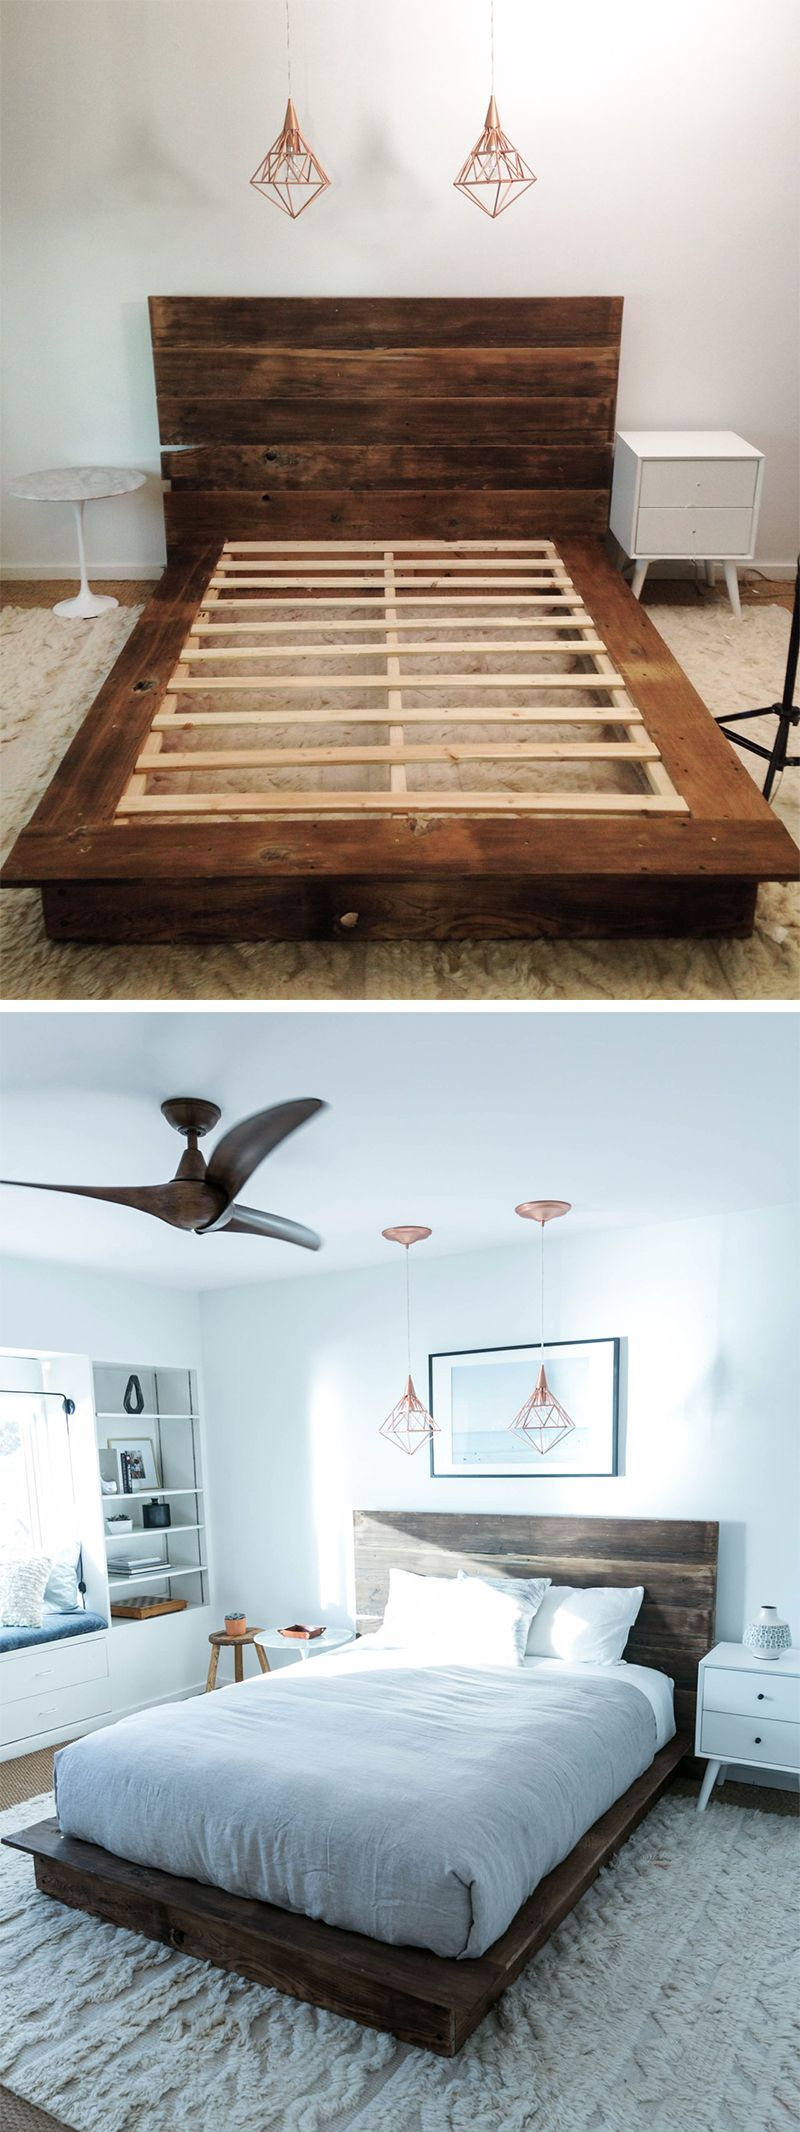 diy reclaimed wood platform bed mr kate diy pinterest schlafzimmer bett und m bel. Black Bedroom Furniture Sets. Home Design Ideas